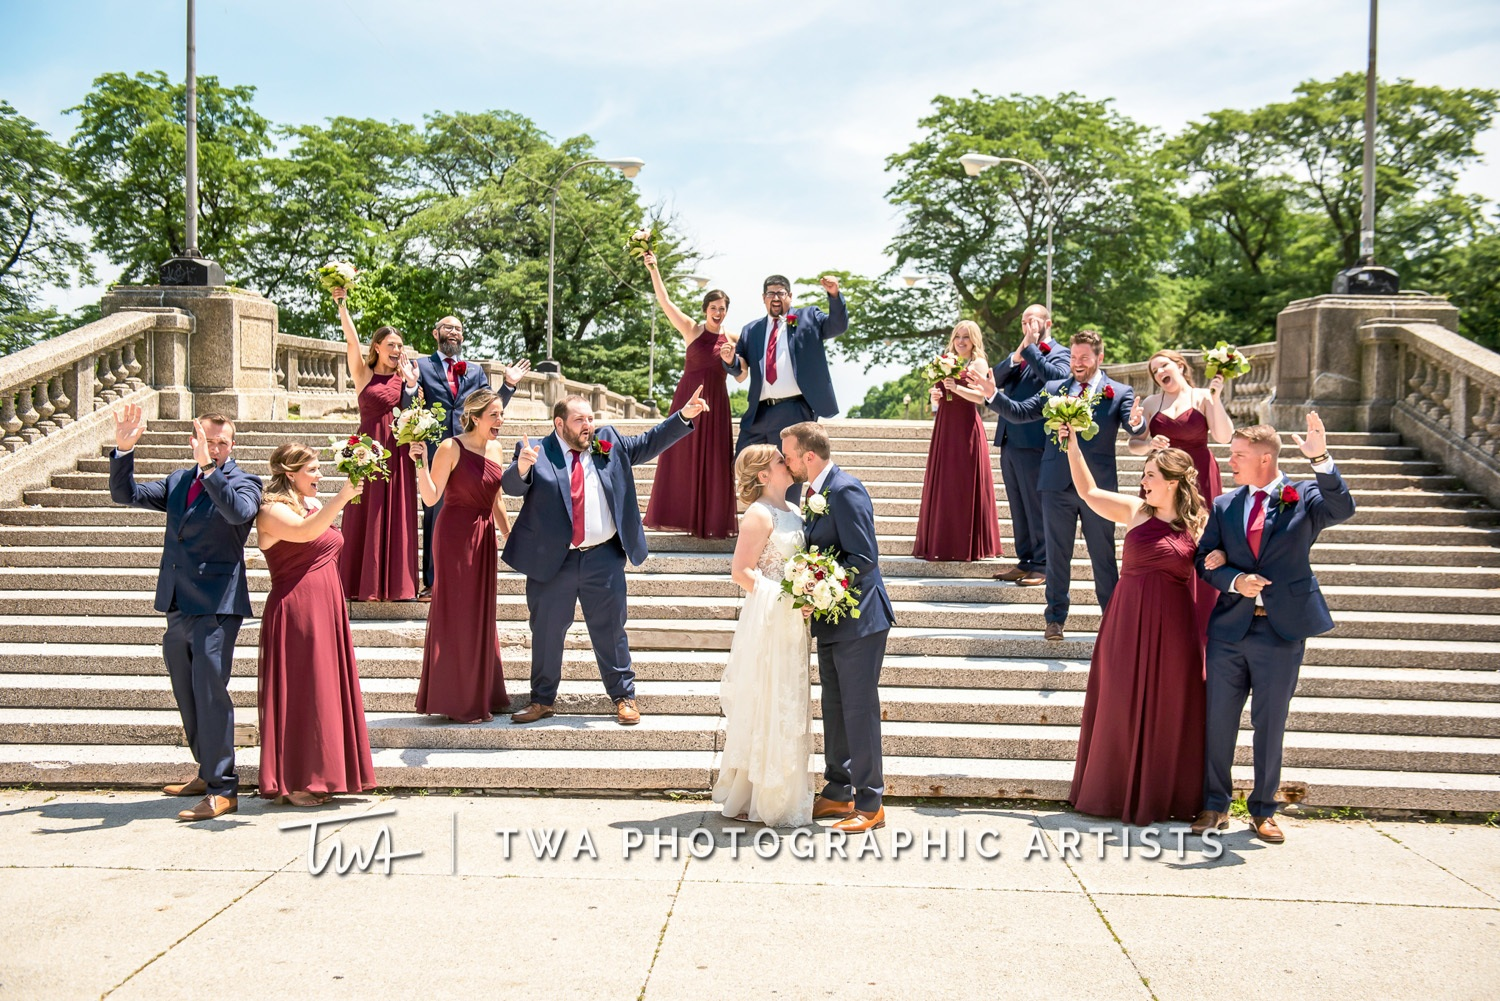 Chicago-Wedding-Photographer-TWA-Photographic-Artists-White-Pines-Banquets_Petersen_Sherman_ZZ_DL-019_0187